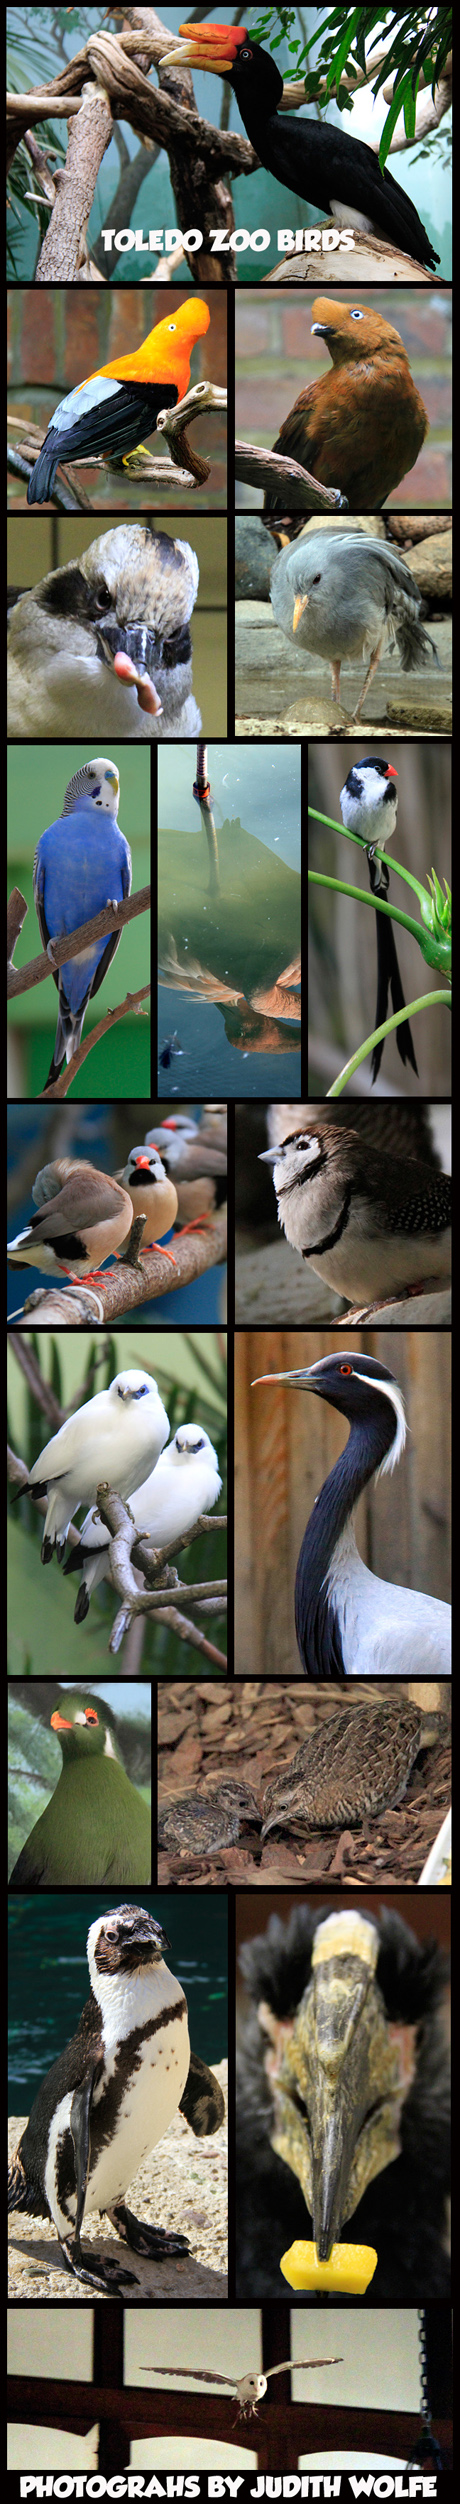 TOLEDOZOOBIRDS